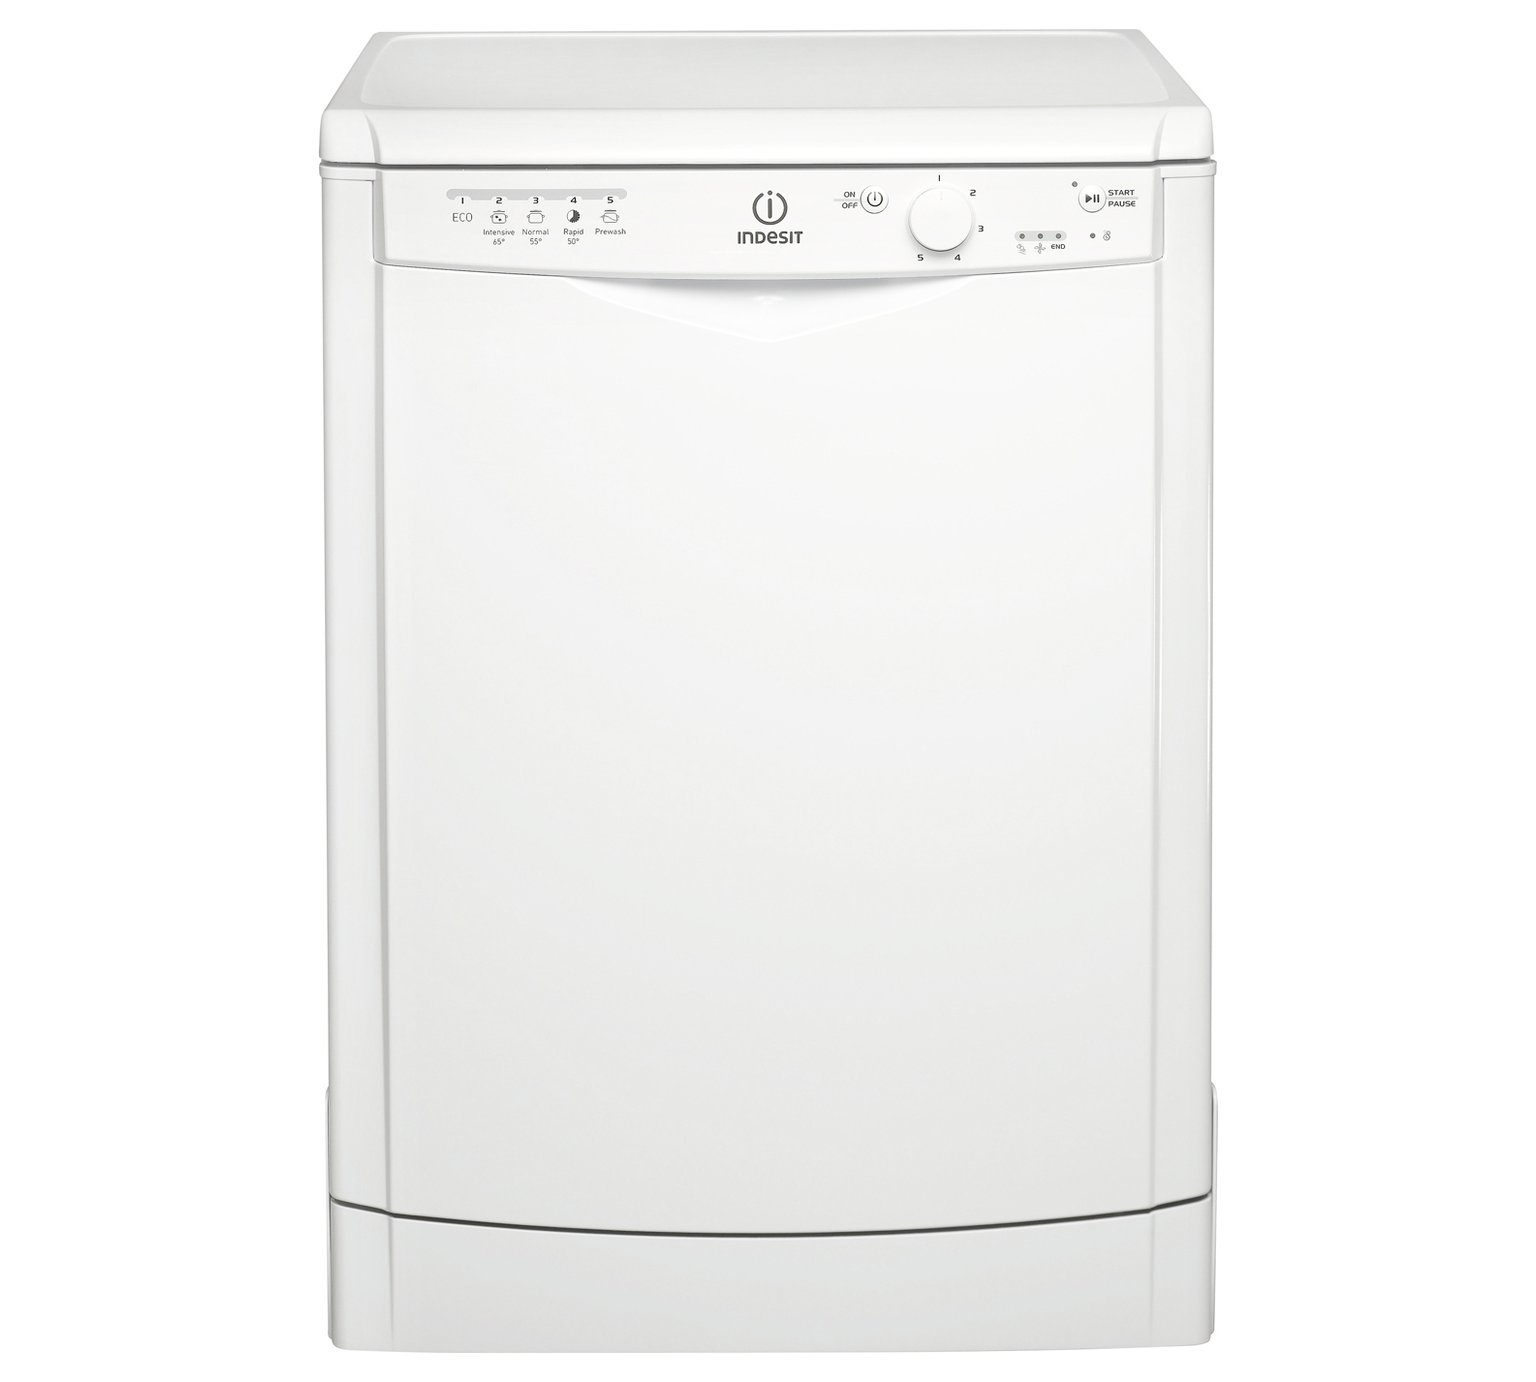 Indesit DFG15B1 Full Size Dishwasher - White